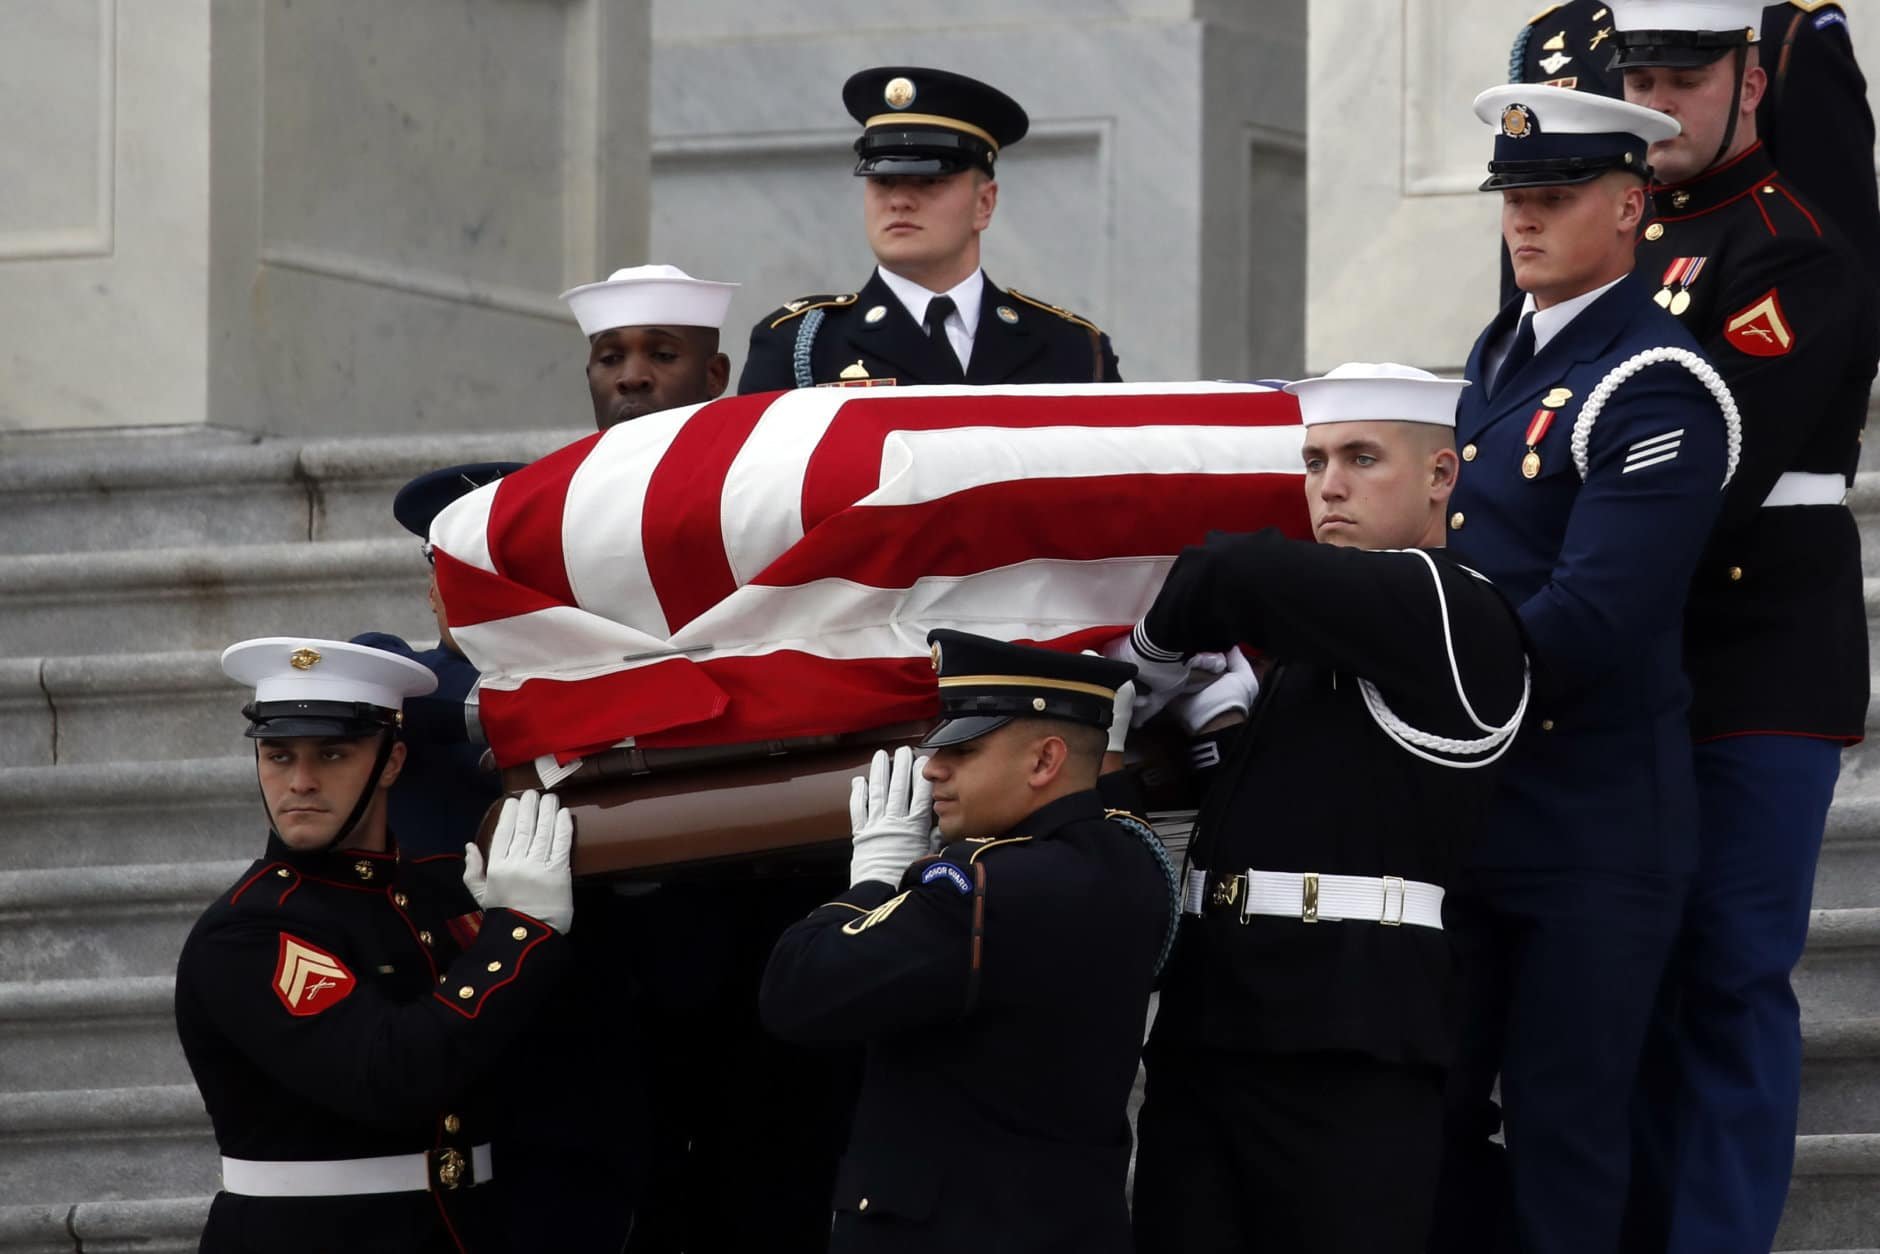 WASHINGTON, DC - DECEMBER 05: (AFP OUT) A joint services military honor guard carries the flag-draped casket of former U.S. President George H. W. Bush from the U.S. Capitol to transport it to Washington National Cathedral December 5, 2018 in Washington, DC. President Bush will be buried at his final resting place at the George H.W. Bush Presidential Library at Texas A&M University in College Station, Texas. A WWII combat veteran, Bush served as a member of Congress from Texas, ambassador to the United Nations, director of the CIA, vice president and 41st president of the United States.  (Photo by Alex Brandon - Pool/Getty Images)